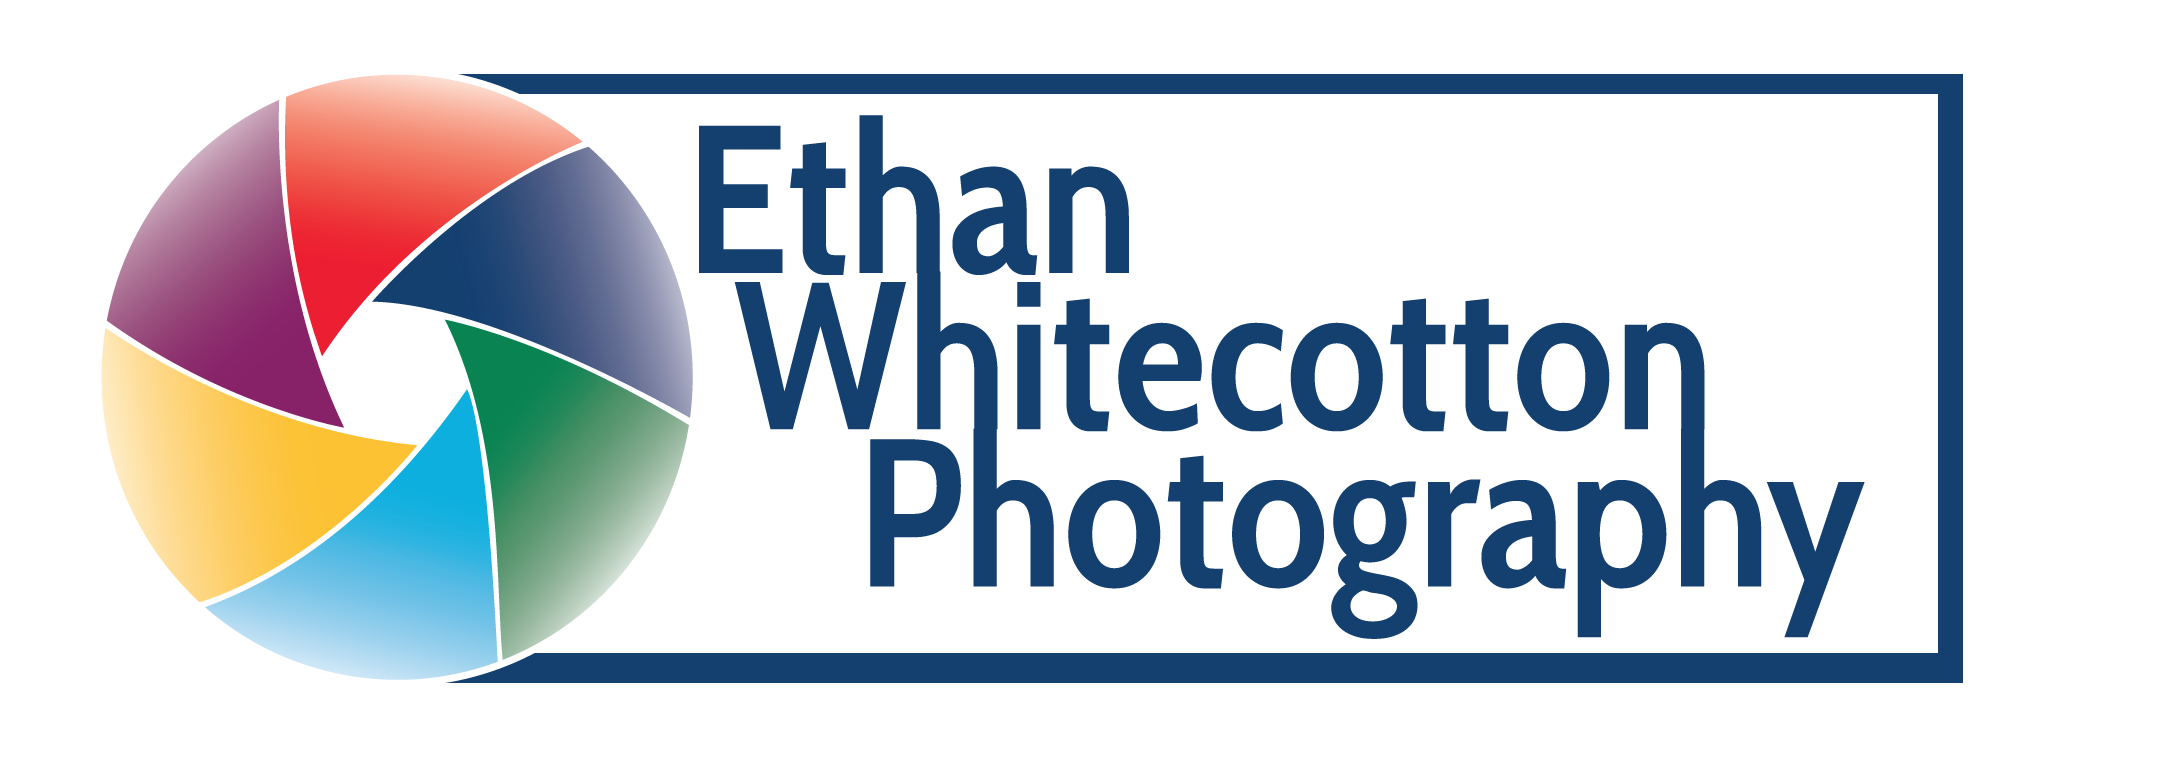 Ethan Whitecotton Photography